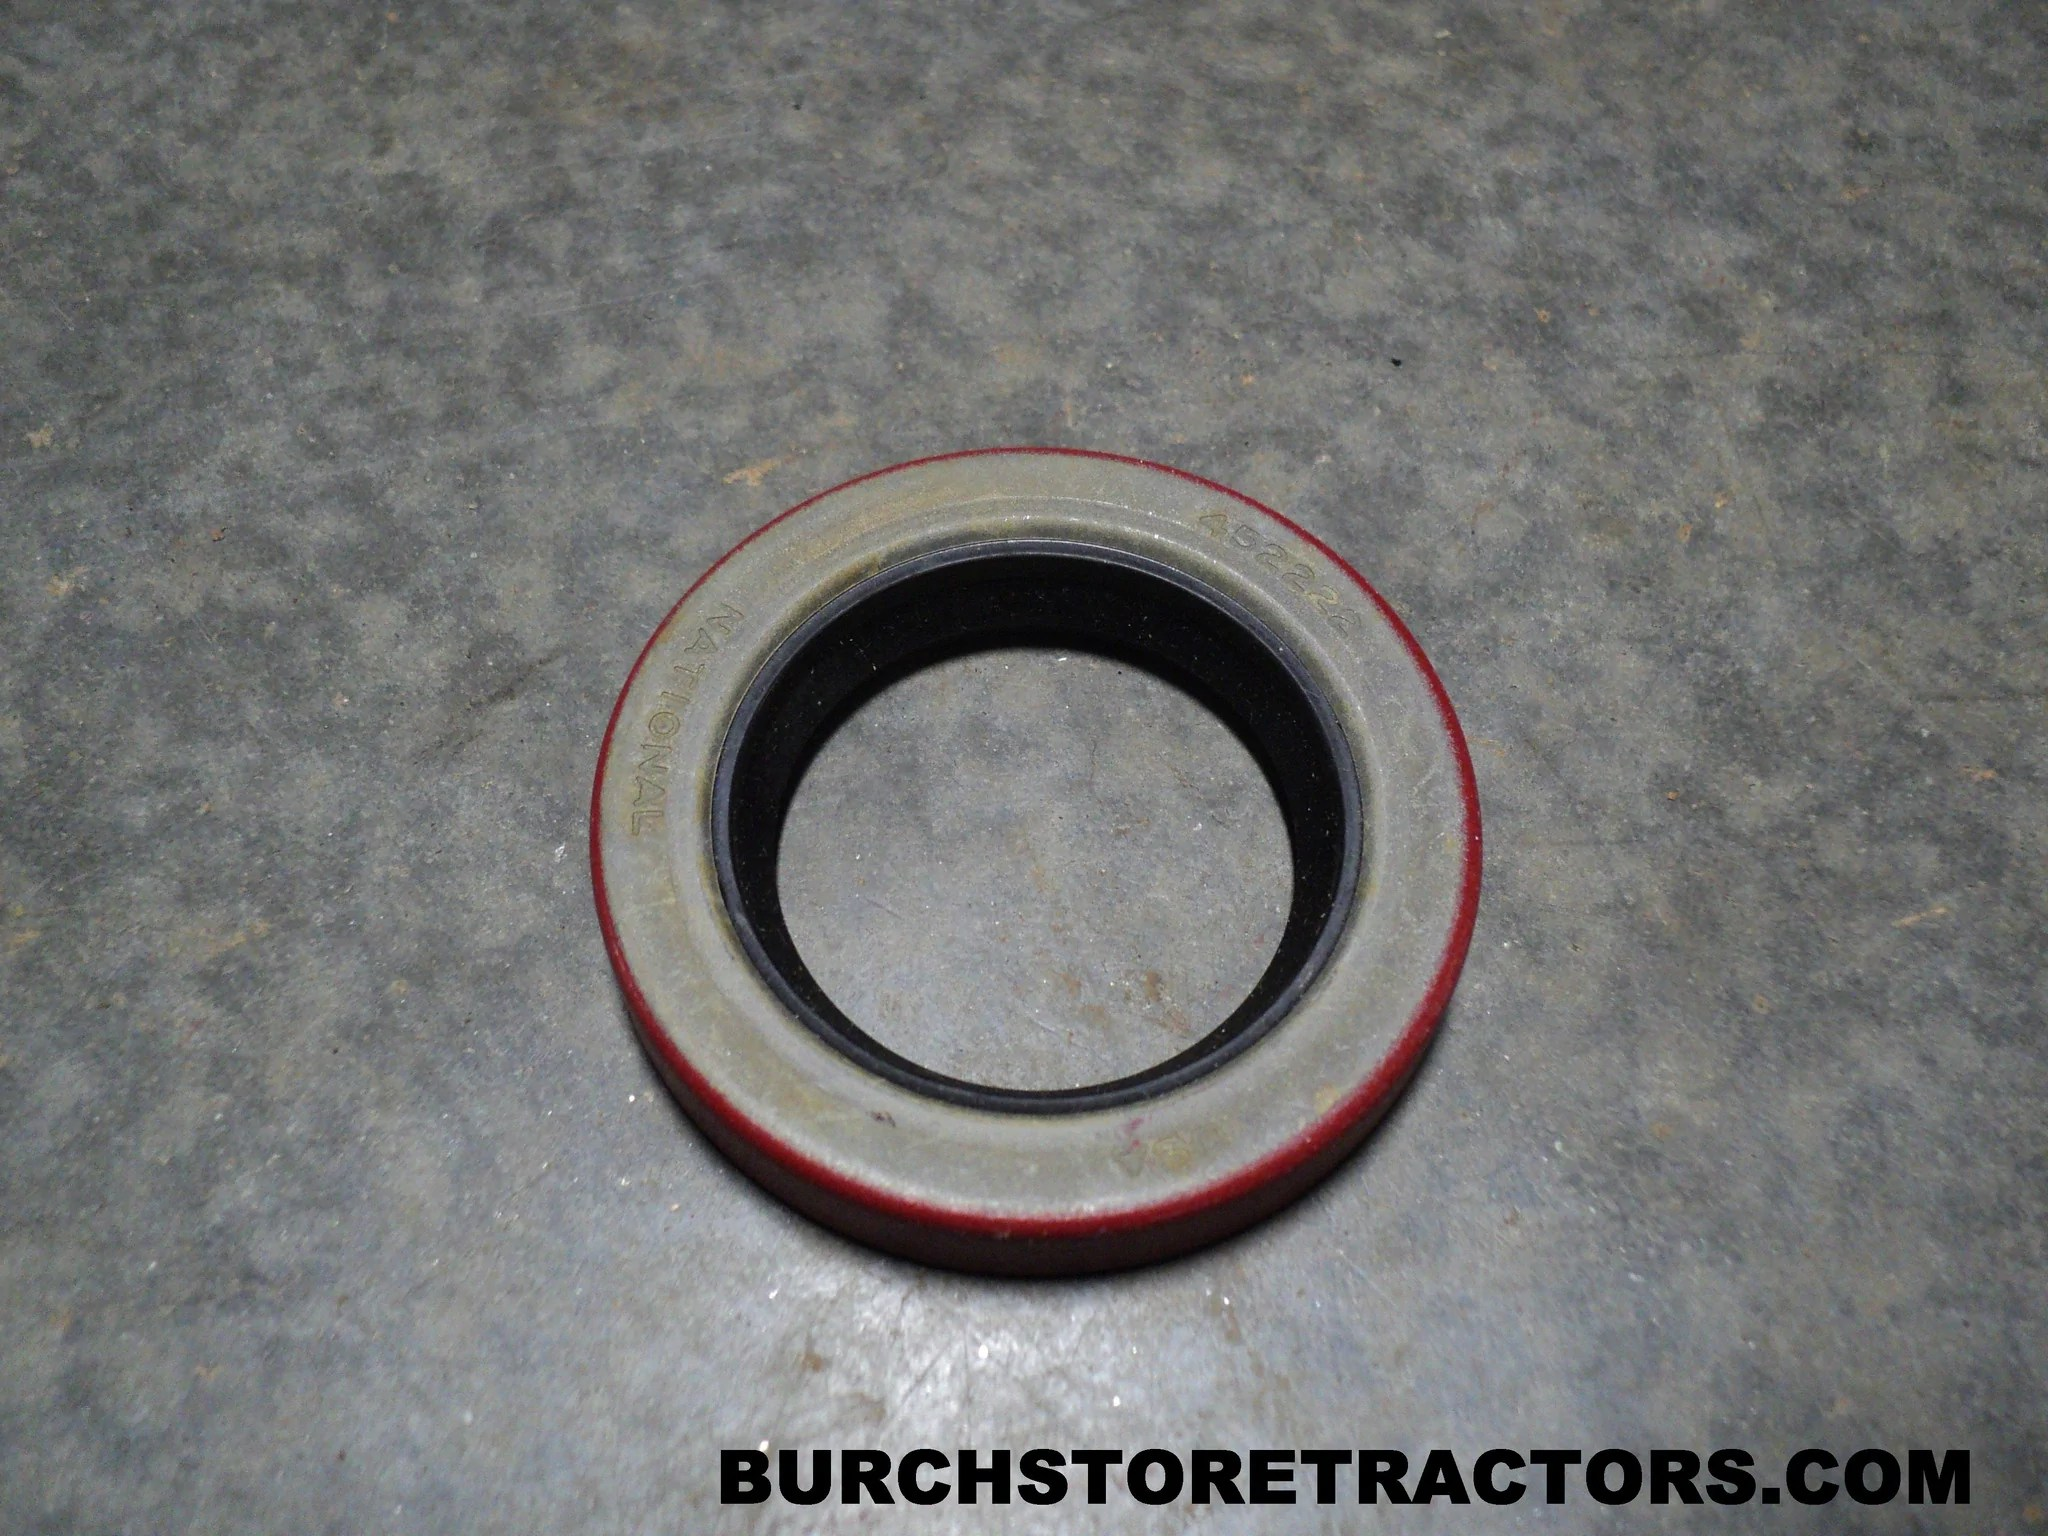 hight resolution of new differential bearing retainer seal for ih farmall a b bn super burch store tractors